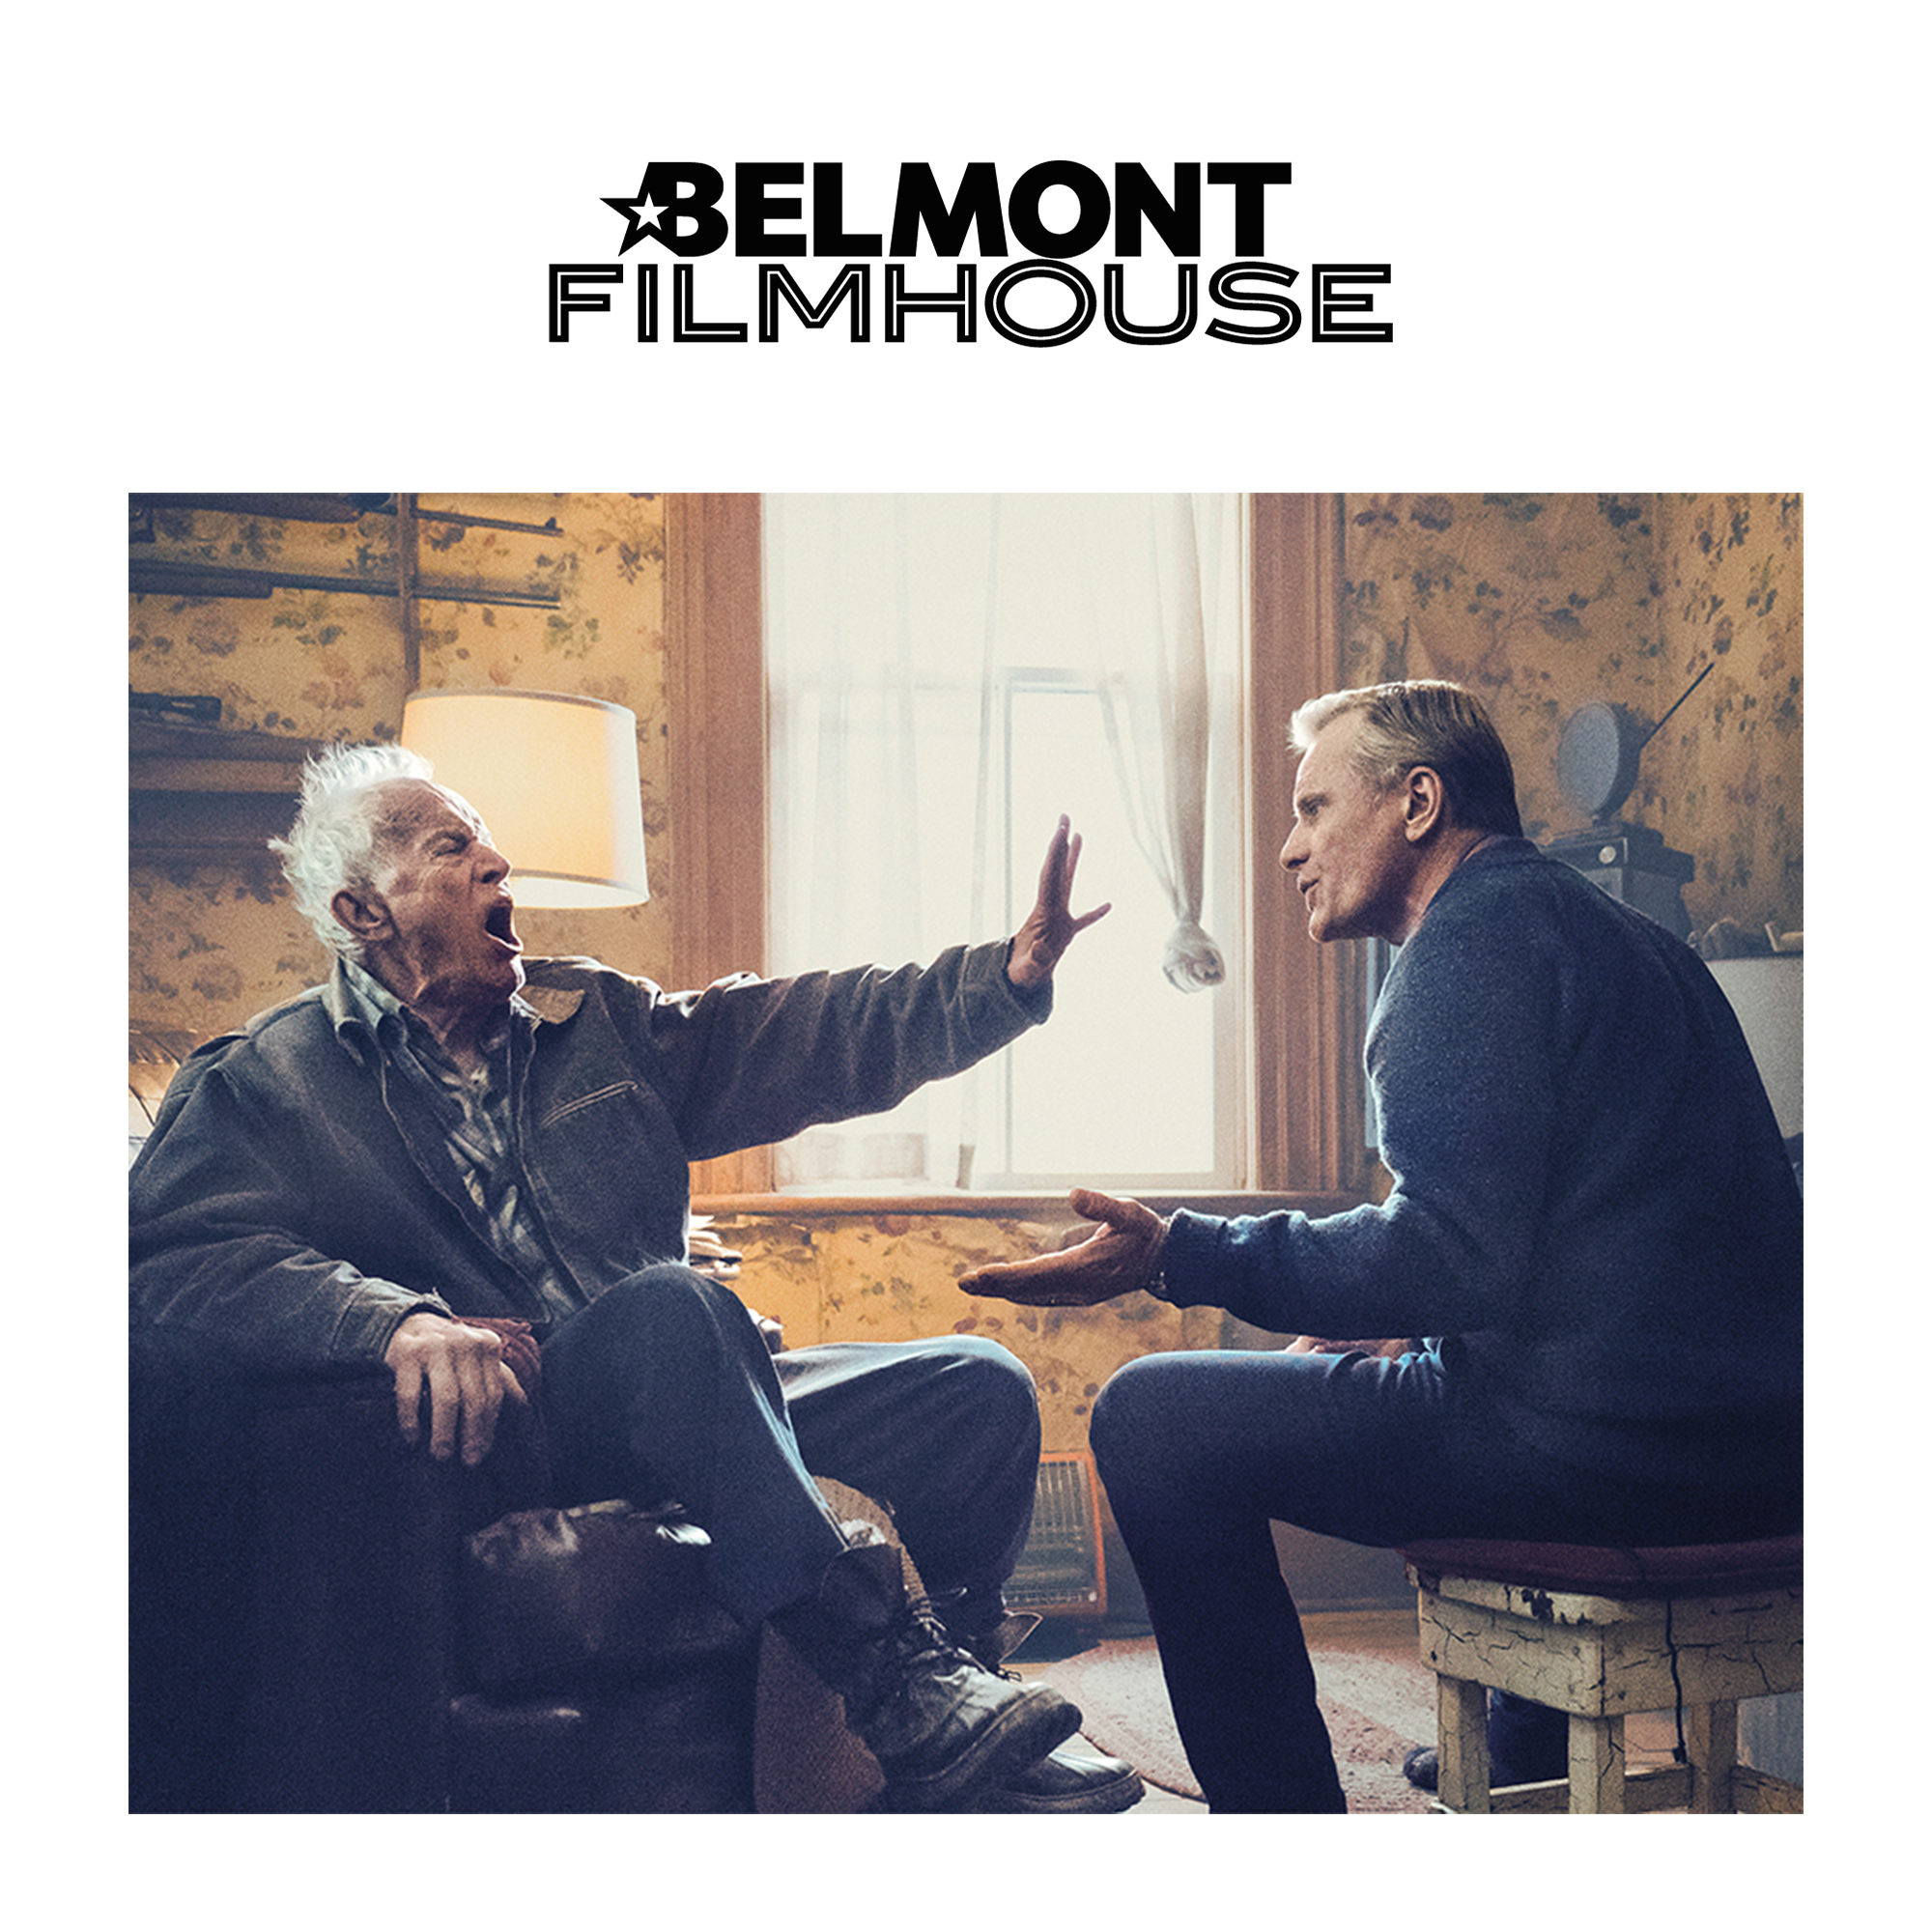 Falling at Belmont Filmhouse